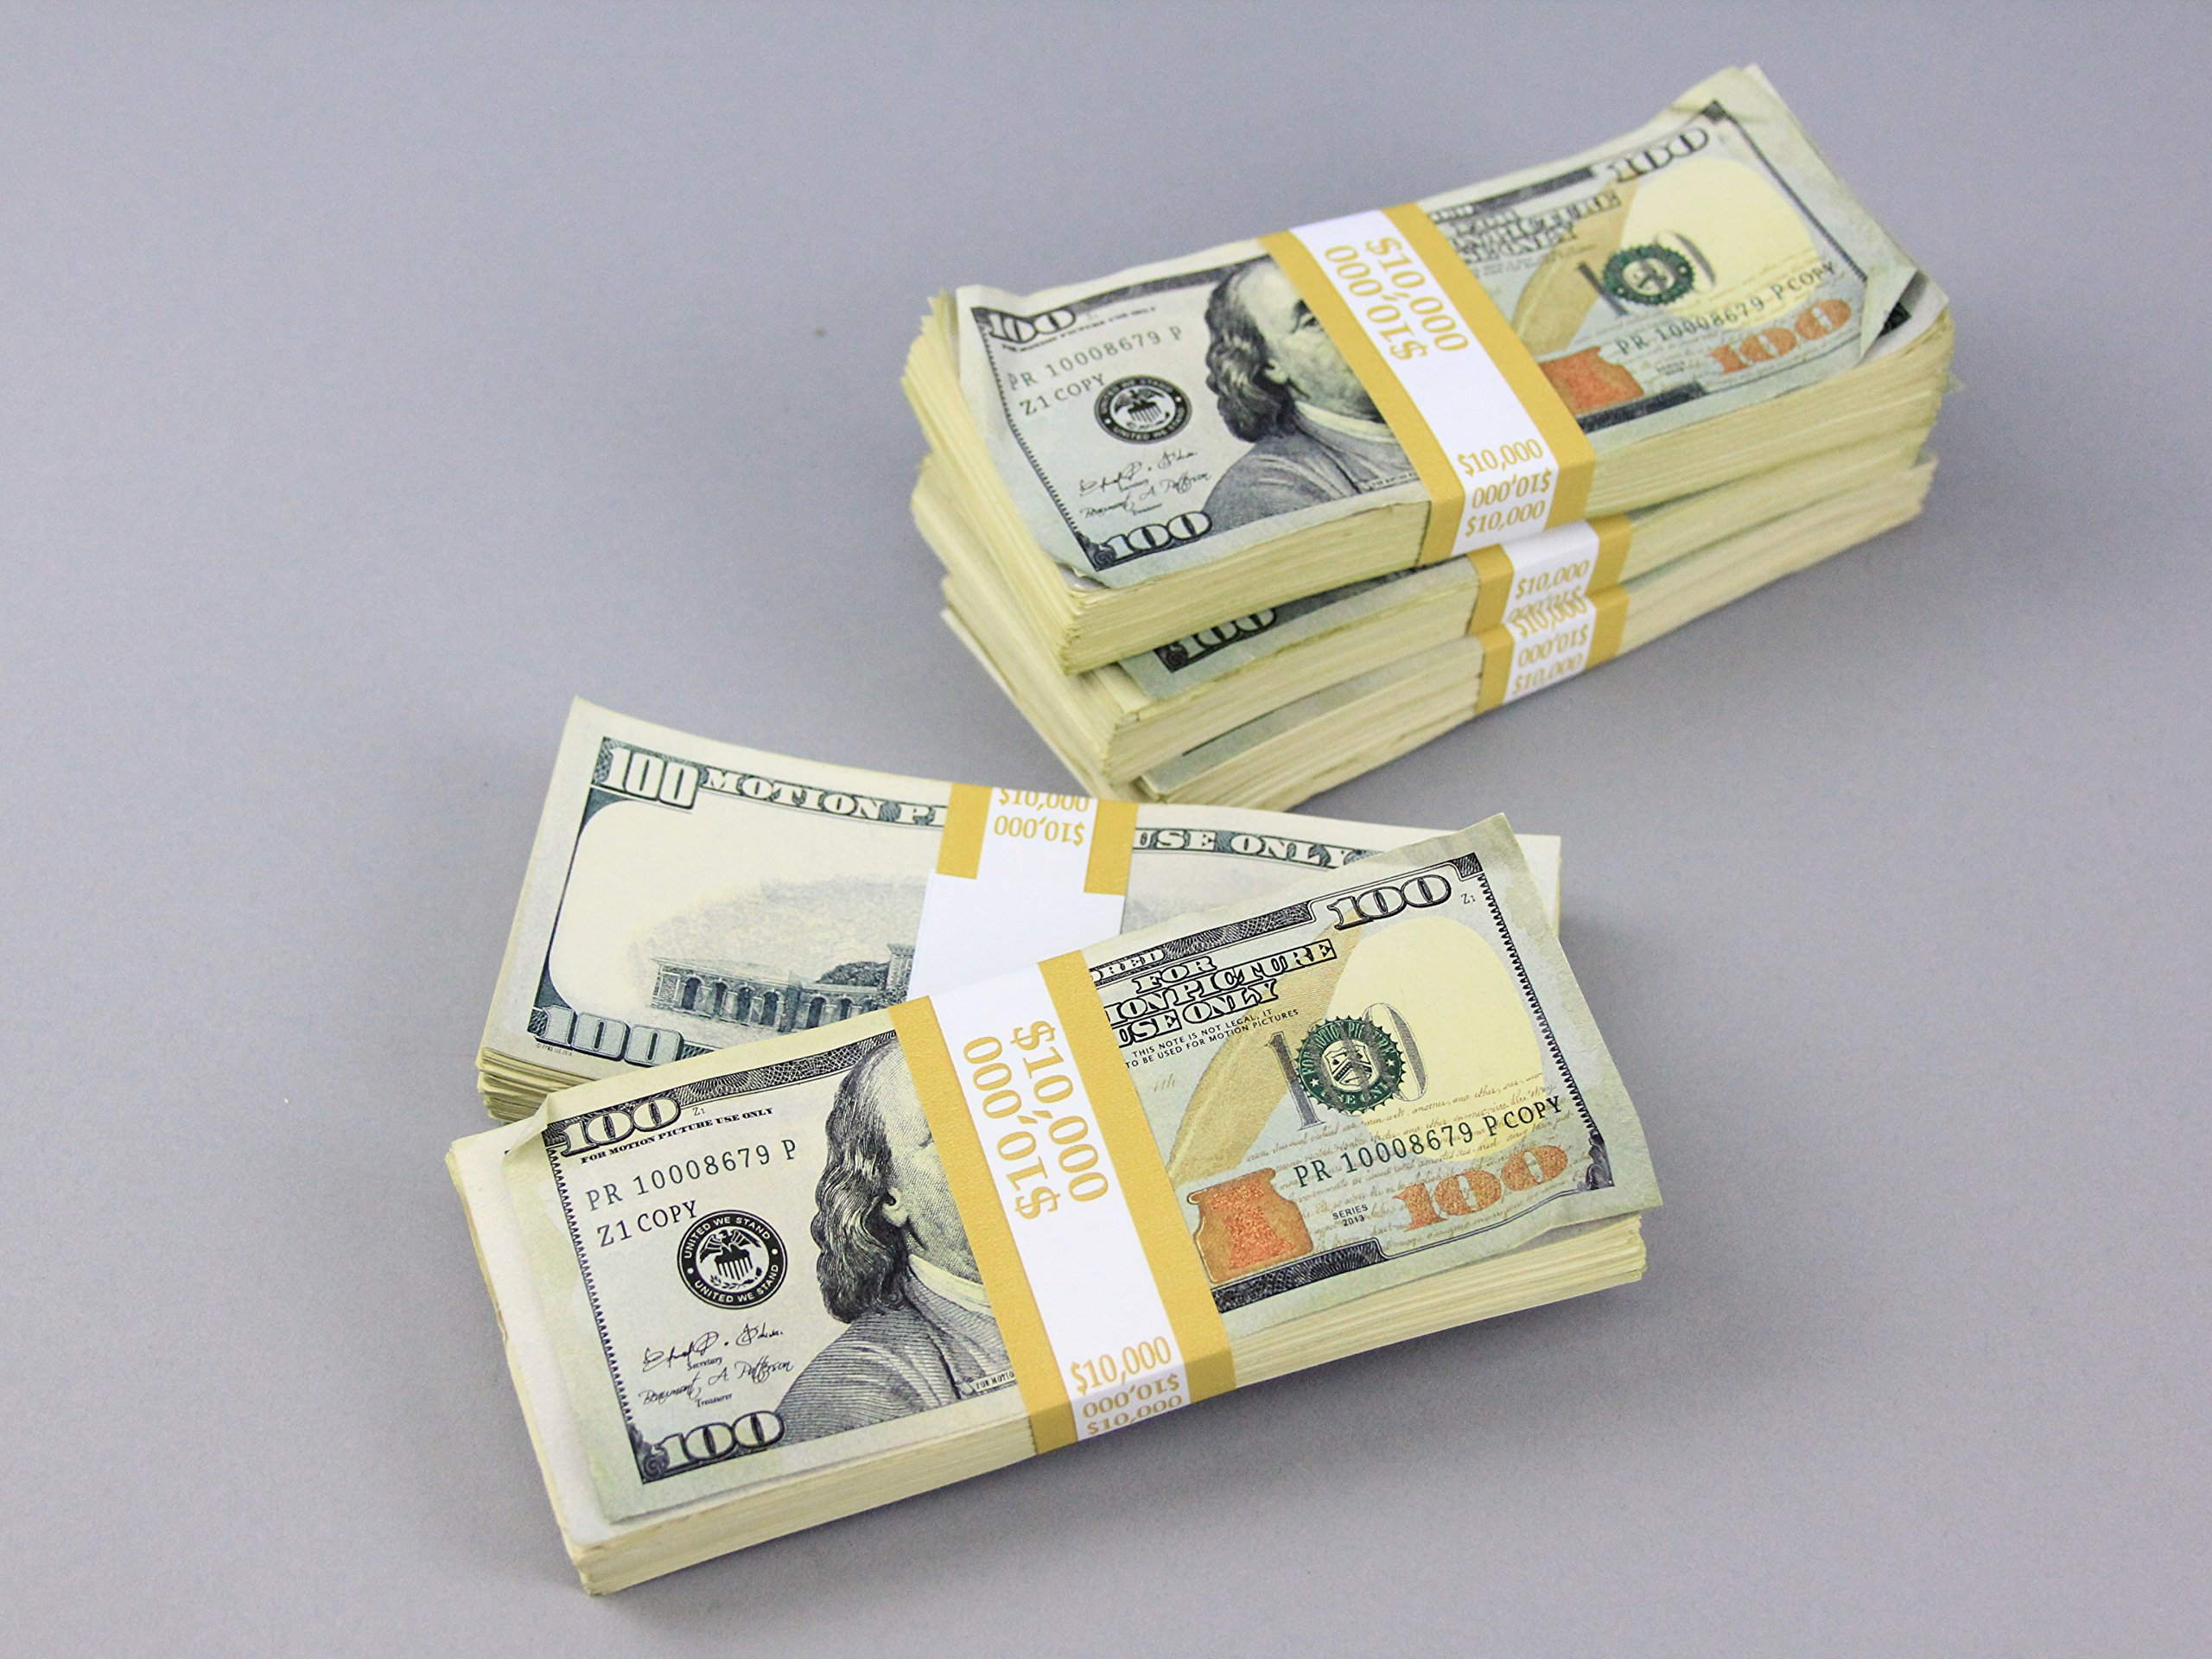 PROP MONEY Real Looking AGED Copy NEW STYLE $100s Total $50,000 FULL PRINT Pack - Total $10,000 for Movie, TV, Videos, Advertising & Novelty